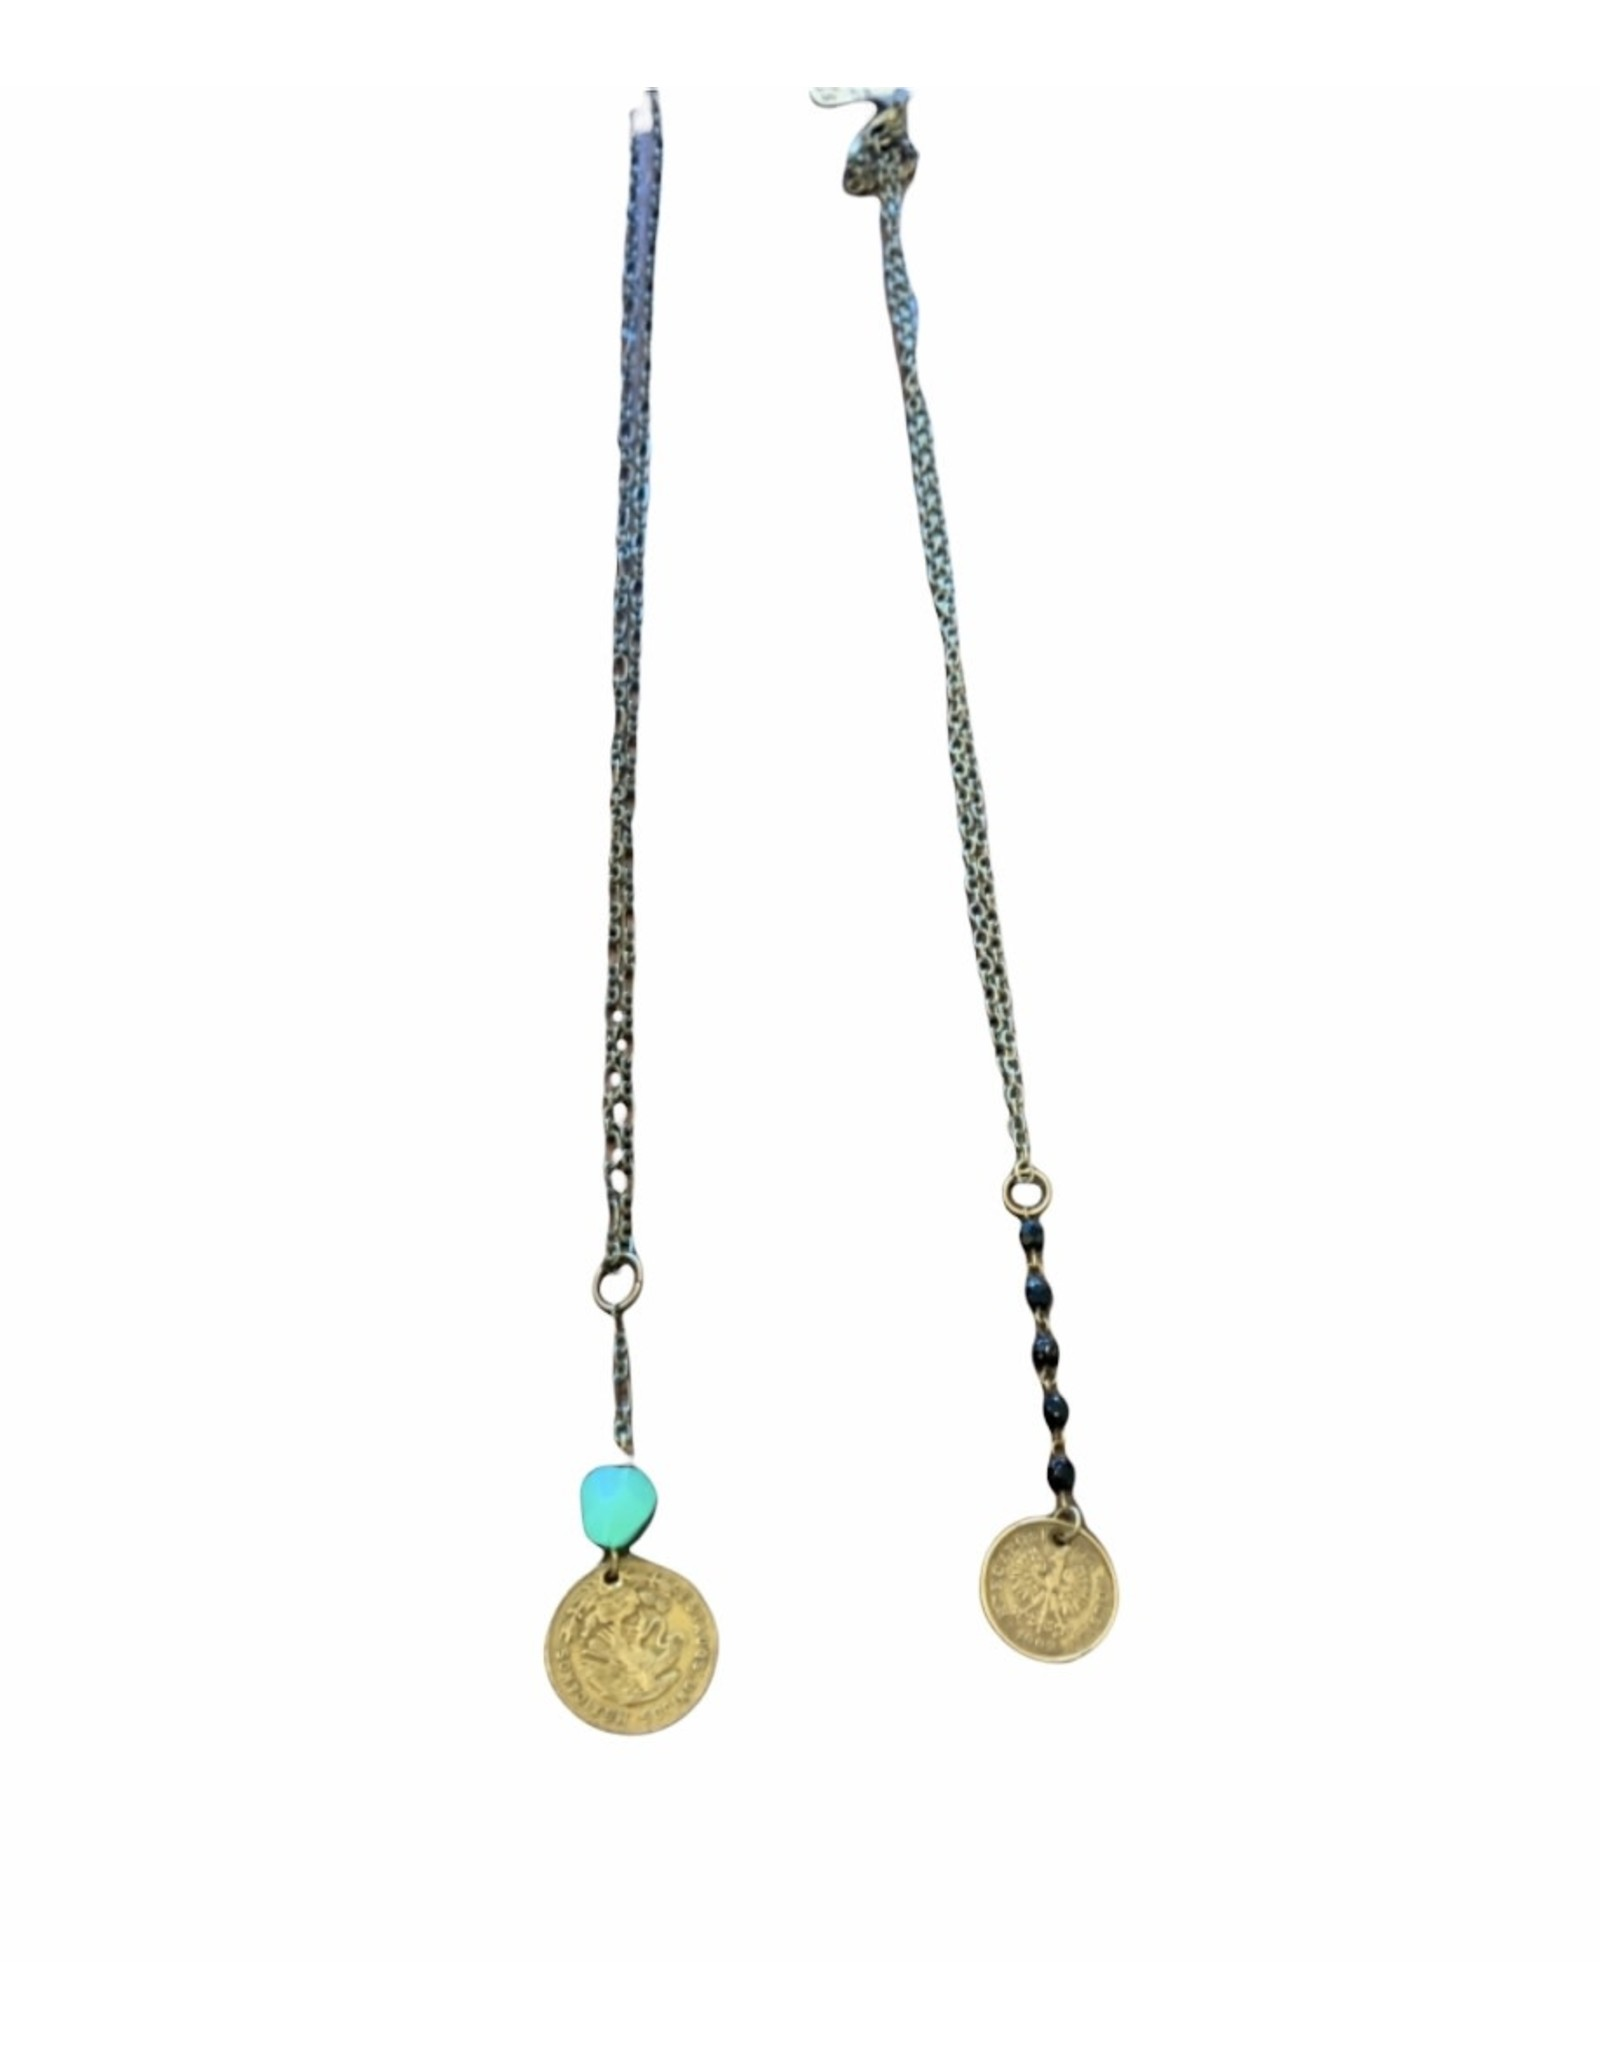 Linda Kingsley Coin Necklace, Local